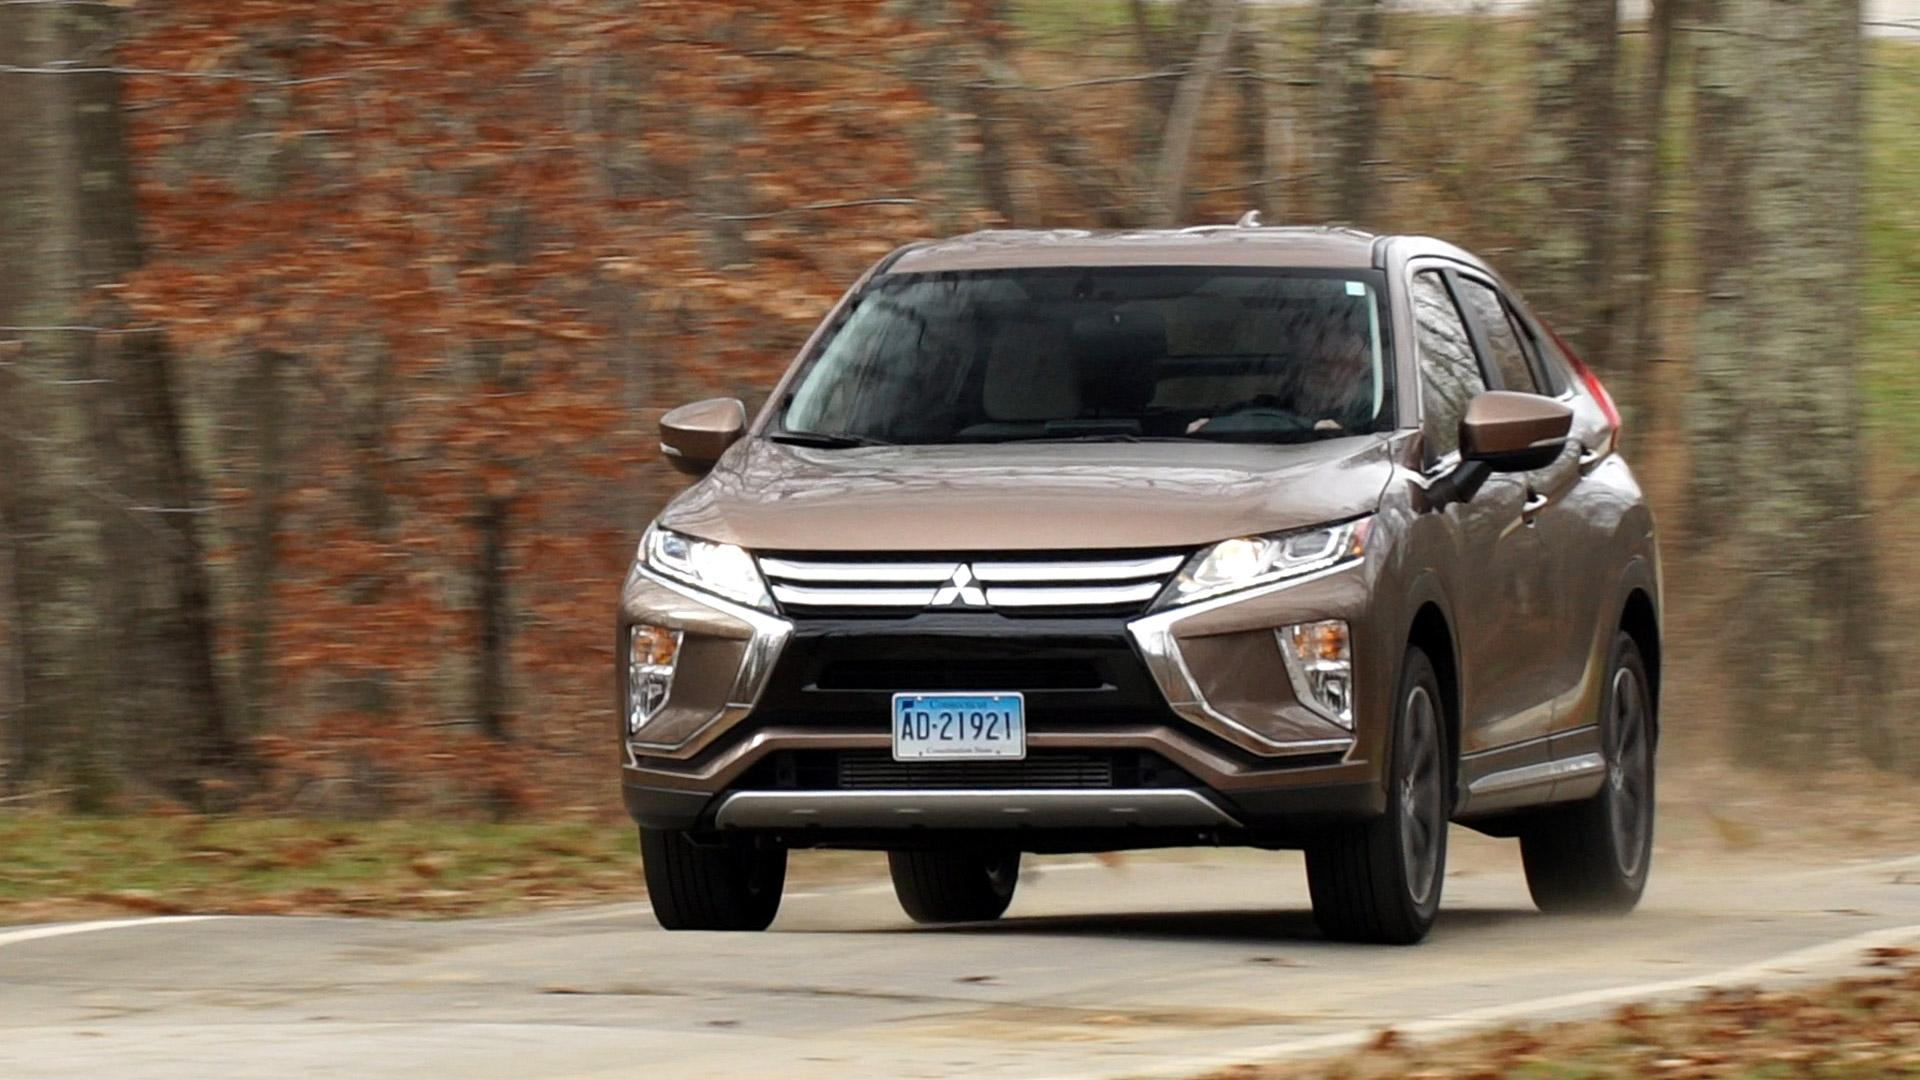 2018 Mitsubishi Eclipse Cross Review - Consumer Reports